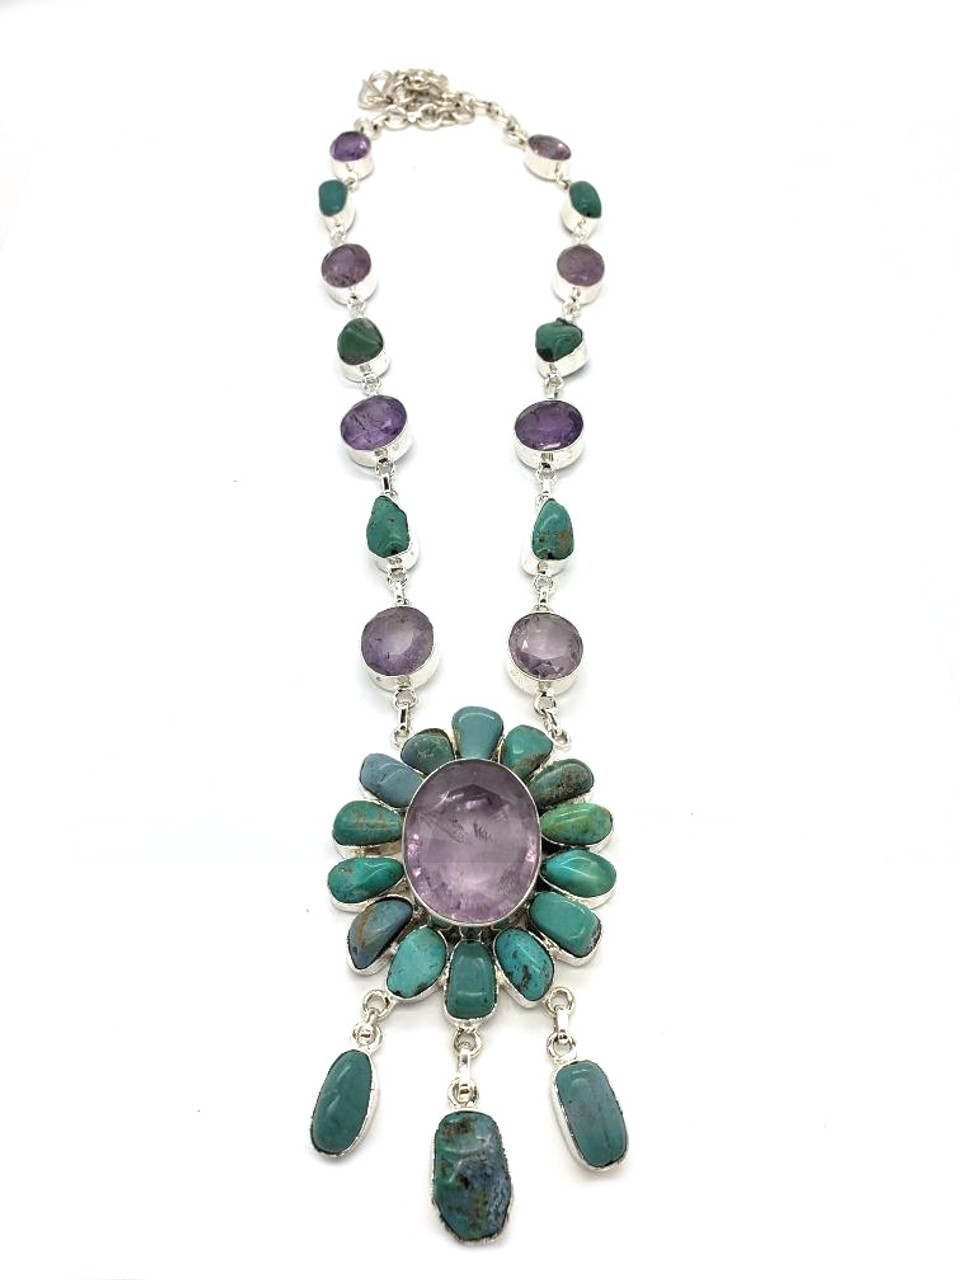 The Celebration! Turquoise and Amethyst Necklace